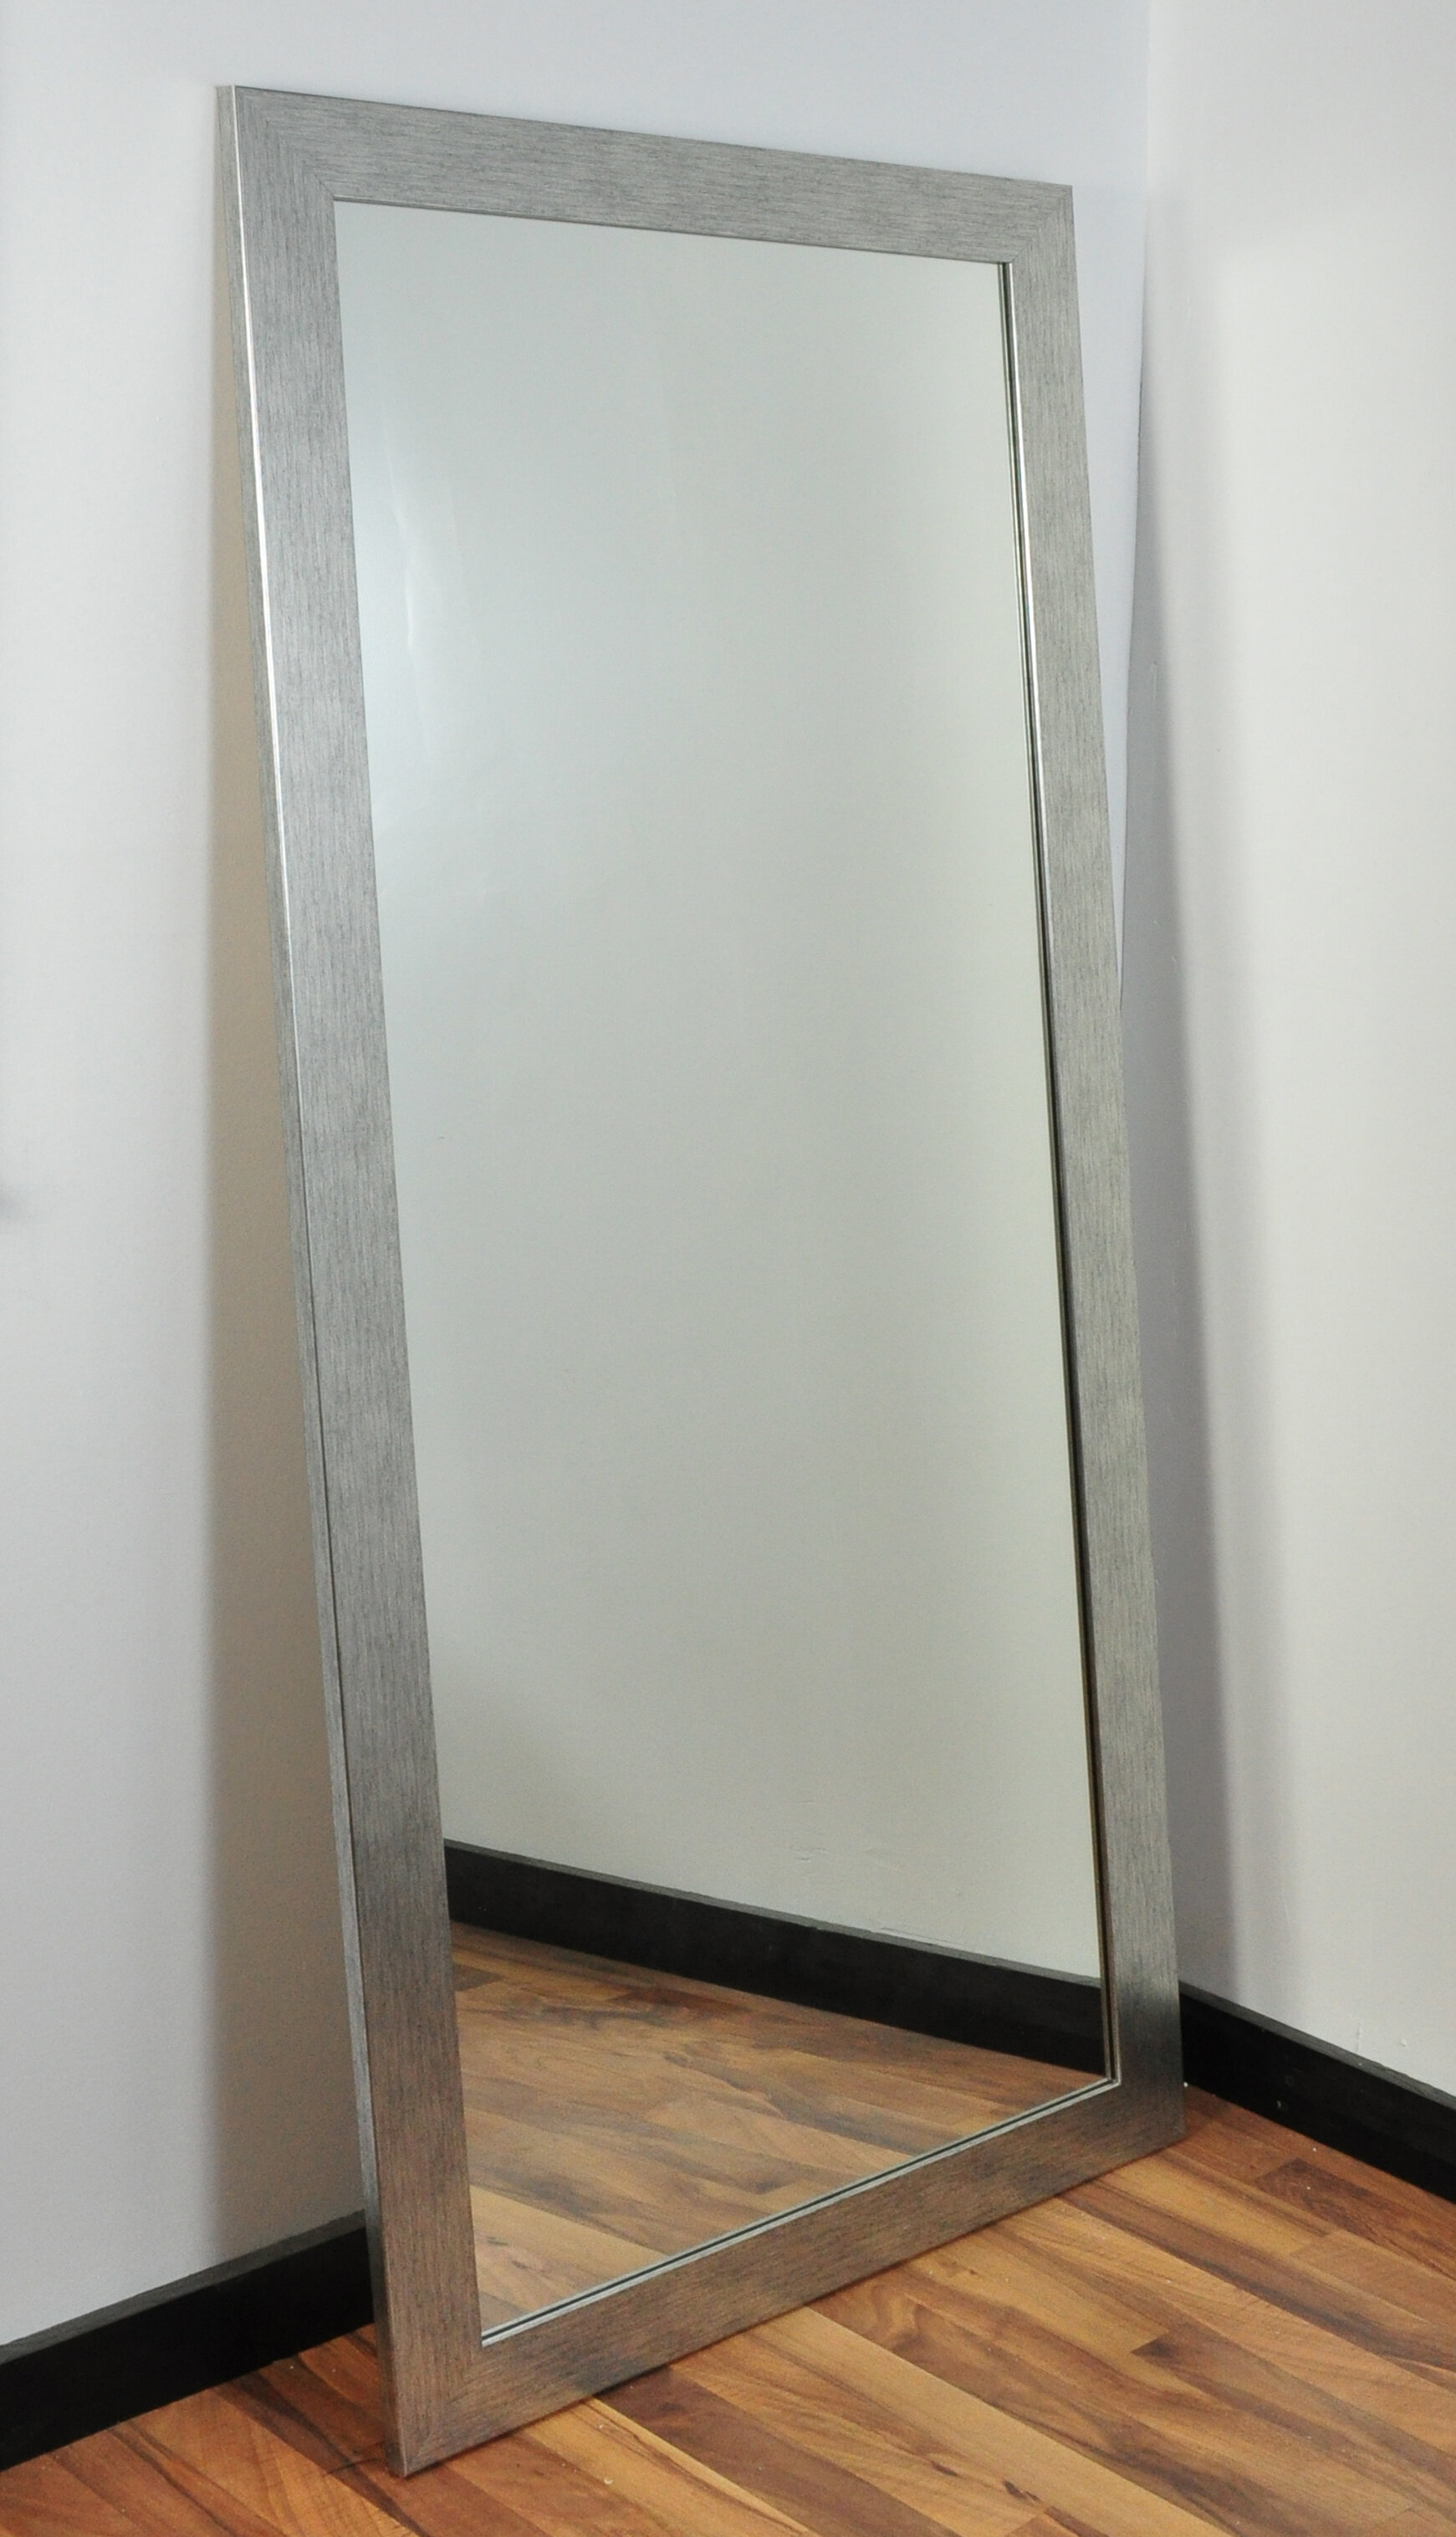 Jameson Modern & Contemporary Full Length Mirror Throughout Modern & Contemporary Full Length Mirrors (View 5 of 30)